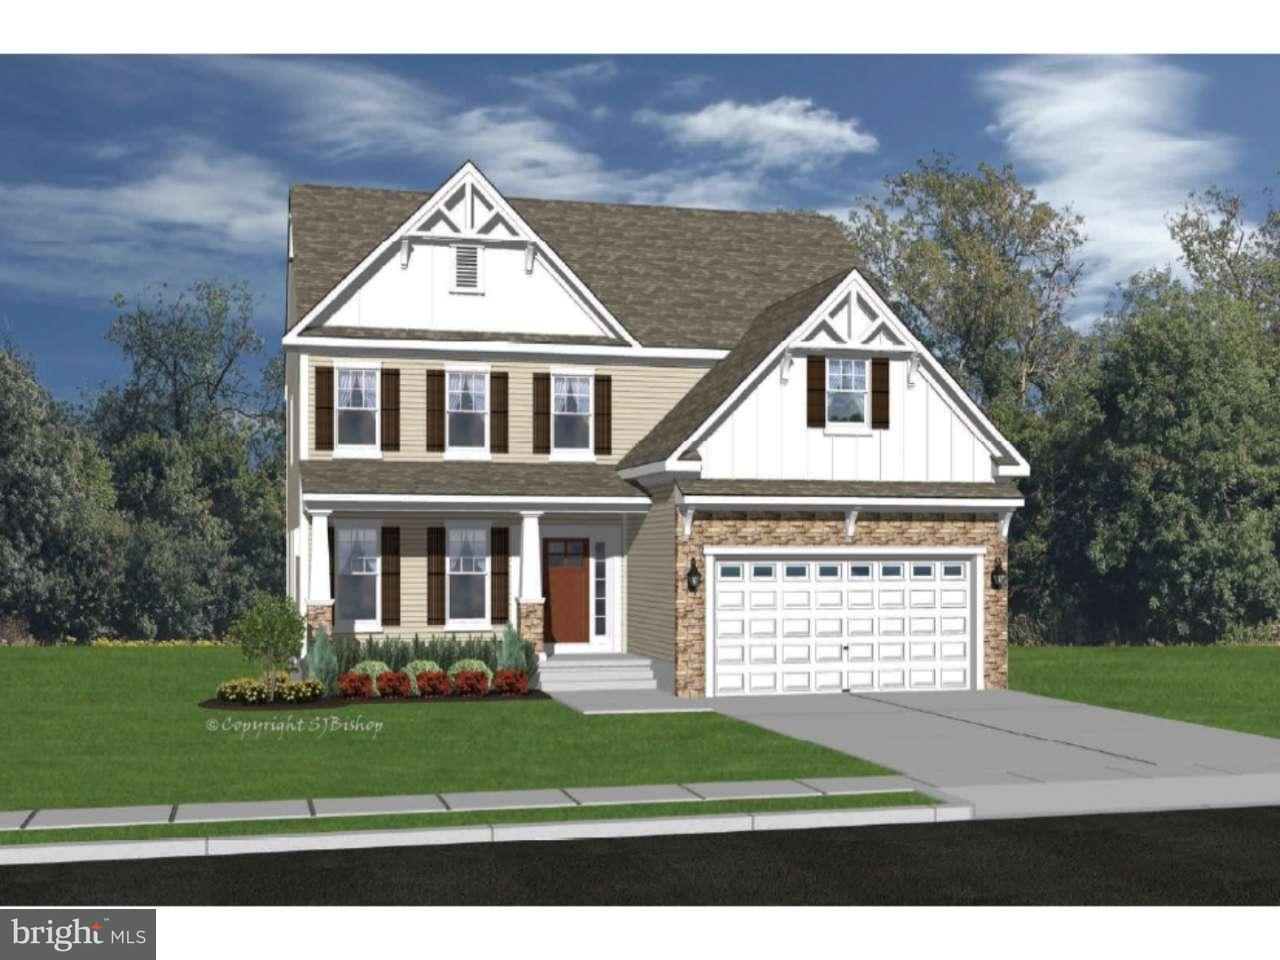 Single Family Home for Sale at 199 UNION Street Fieldsboro, New Jersey 08505 United States